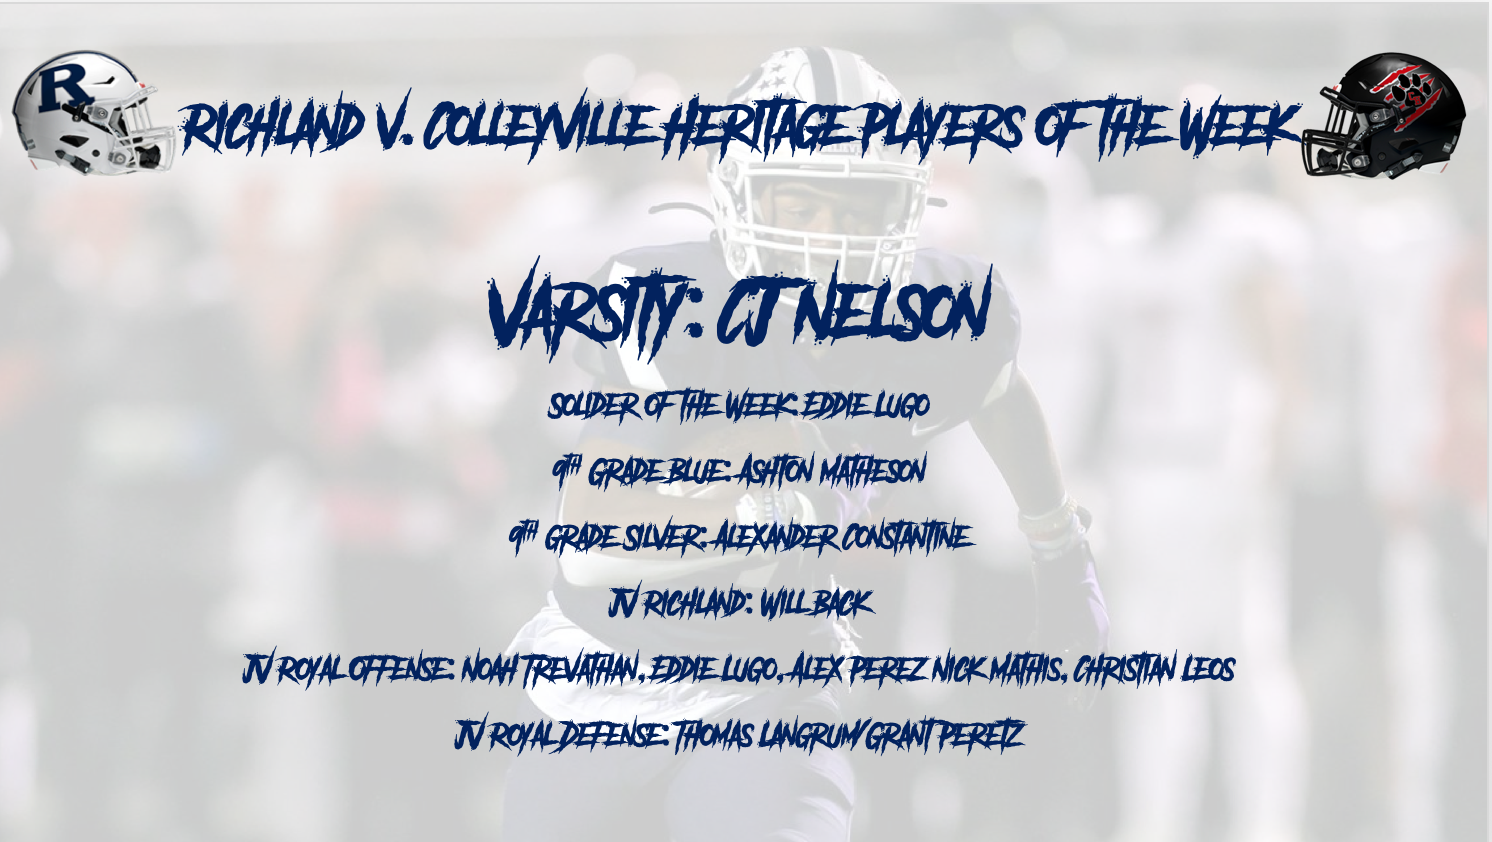 Richland v. Colleyville Heritage Players of the Week